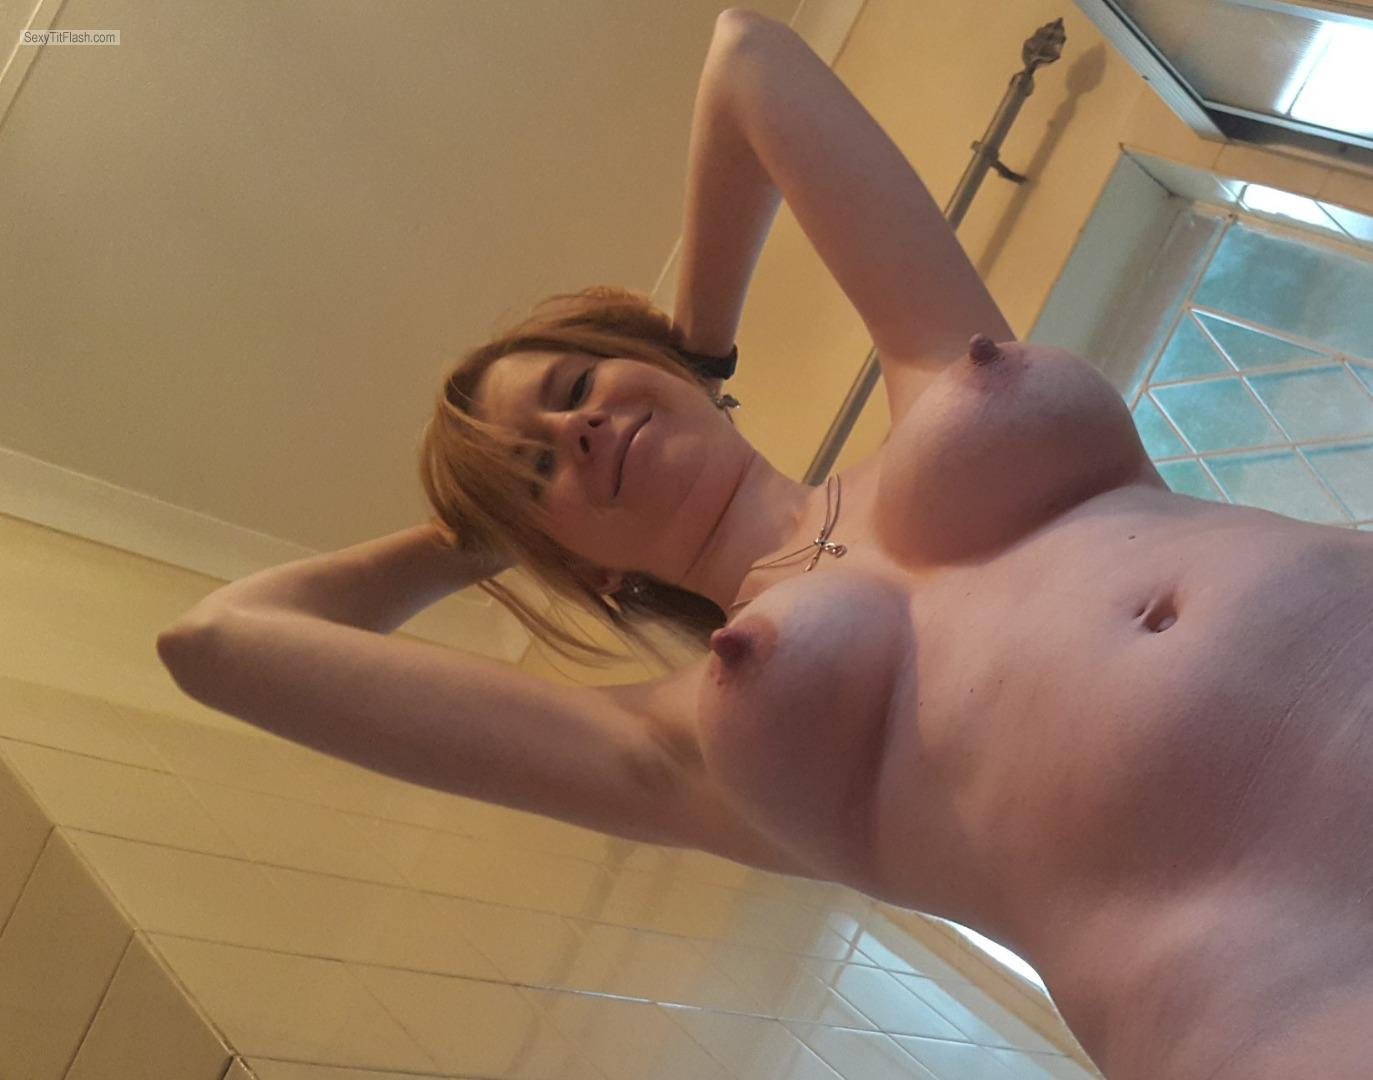 Big Tits Of My Wife Topless Honeywife